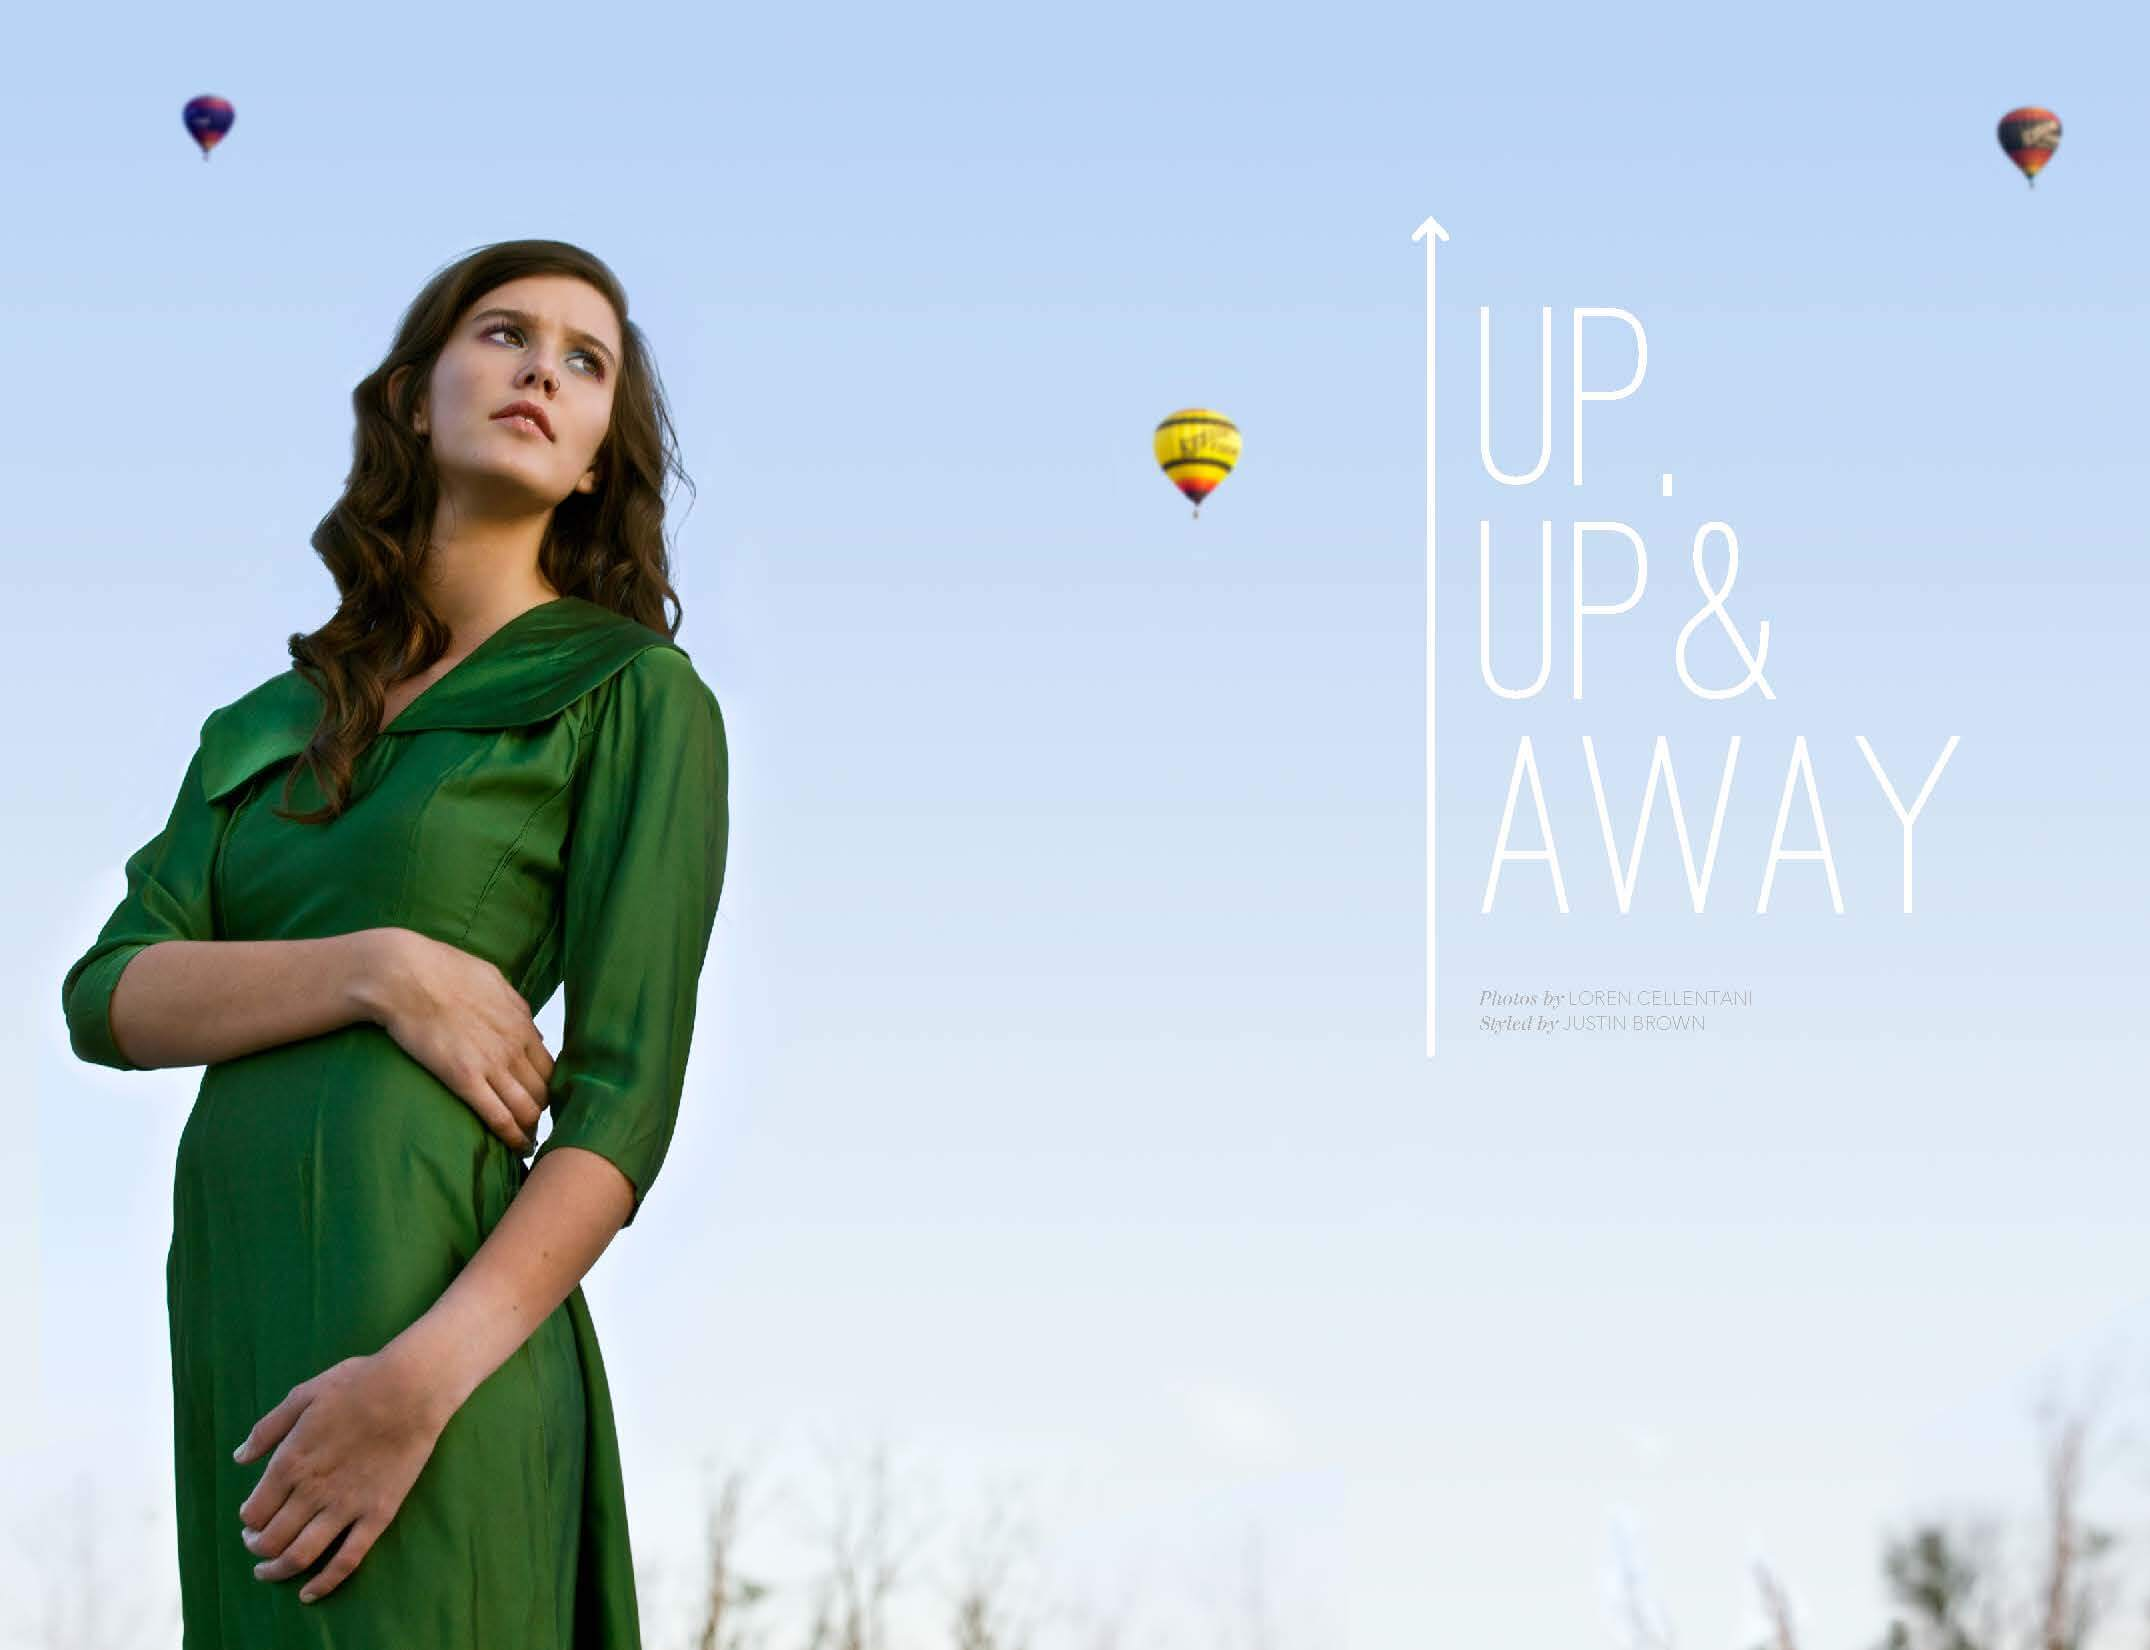 Up, Up & Away by Megan Hillman